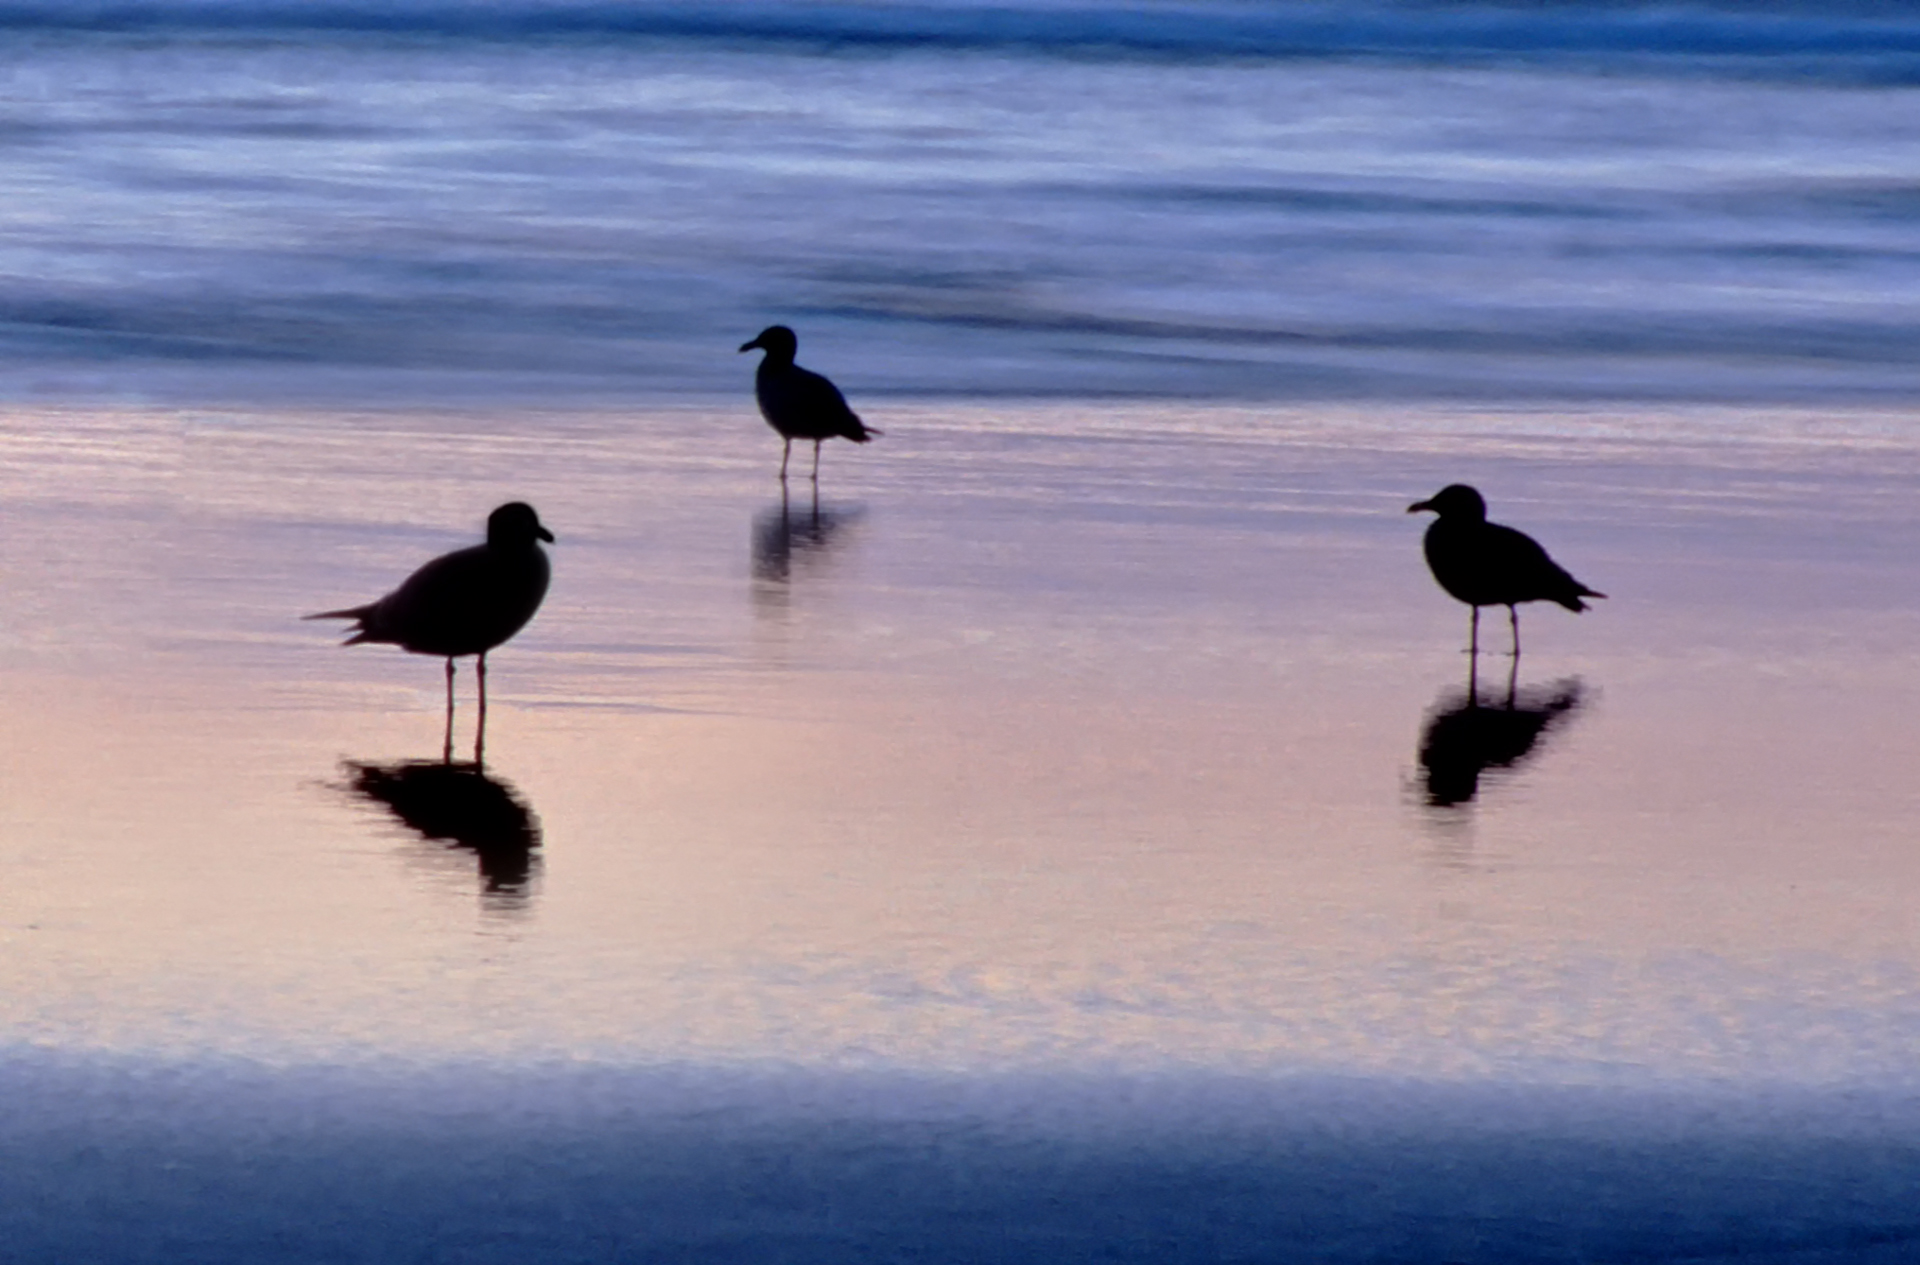 Gull Trilogy - Digital (Shallow Depth of Field) - Name Withheld Per Request